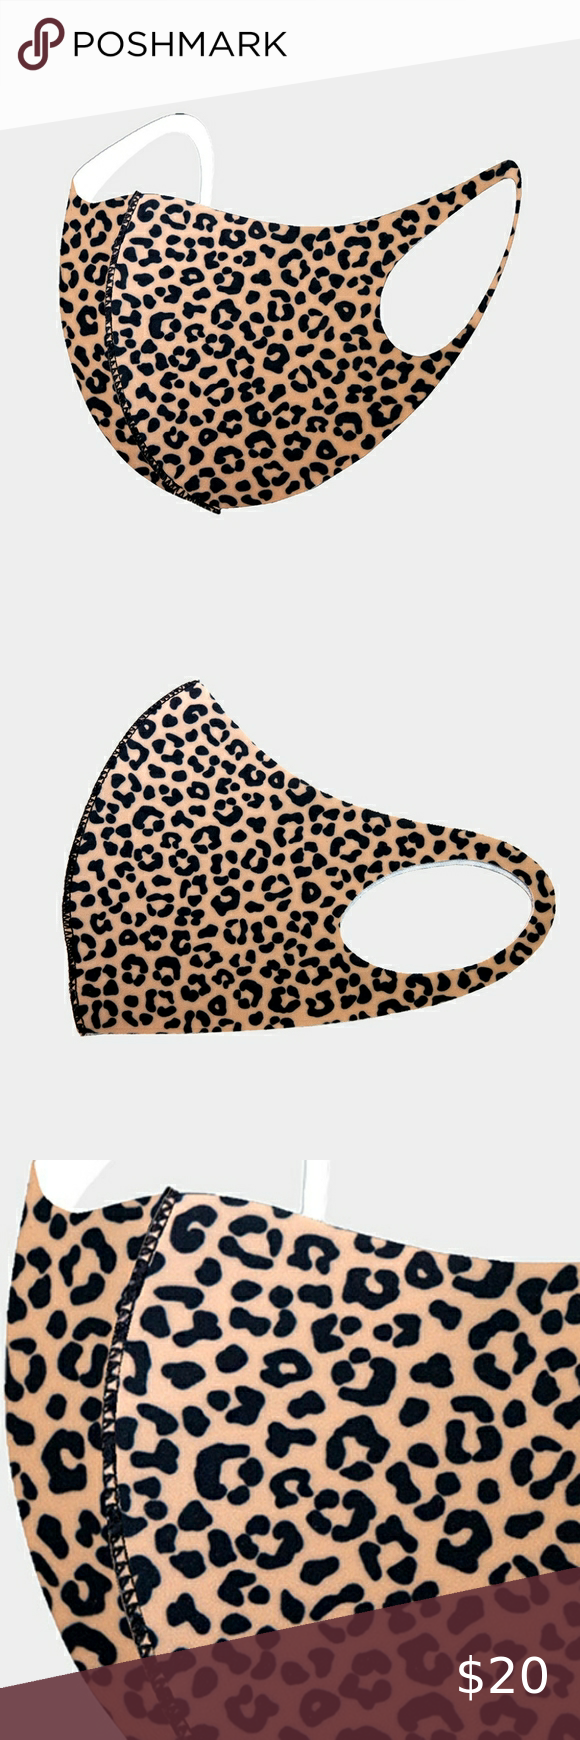 Brown And Black Leopard Print Fashion Face Mask Leopard Print Fashion Fashion Prints Fashion Face Mask